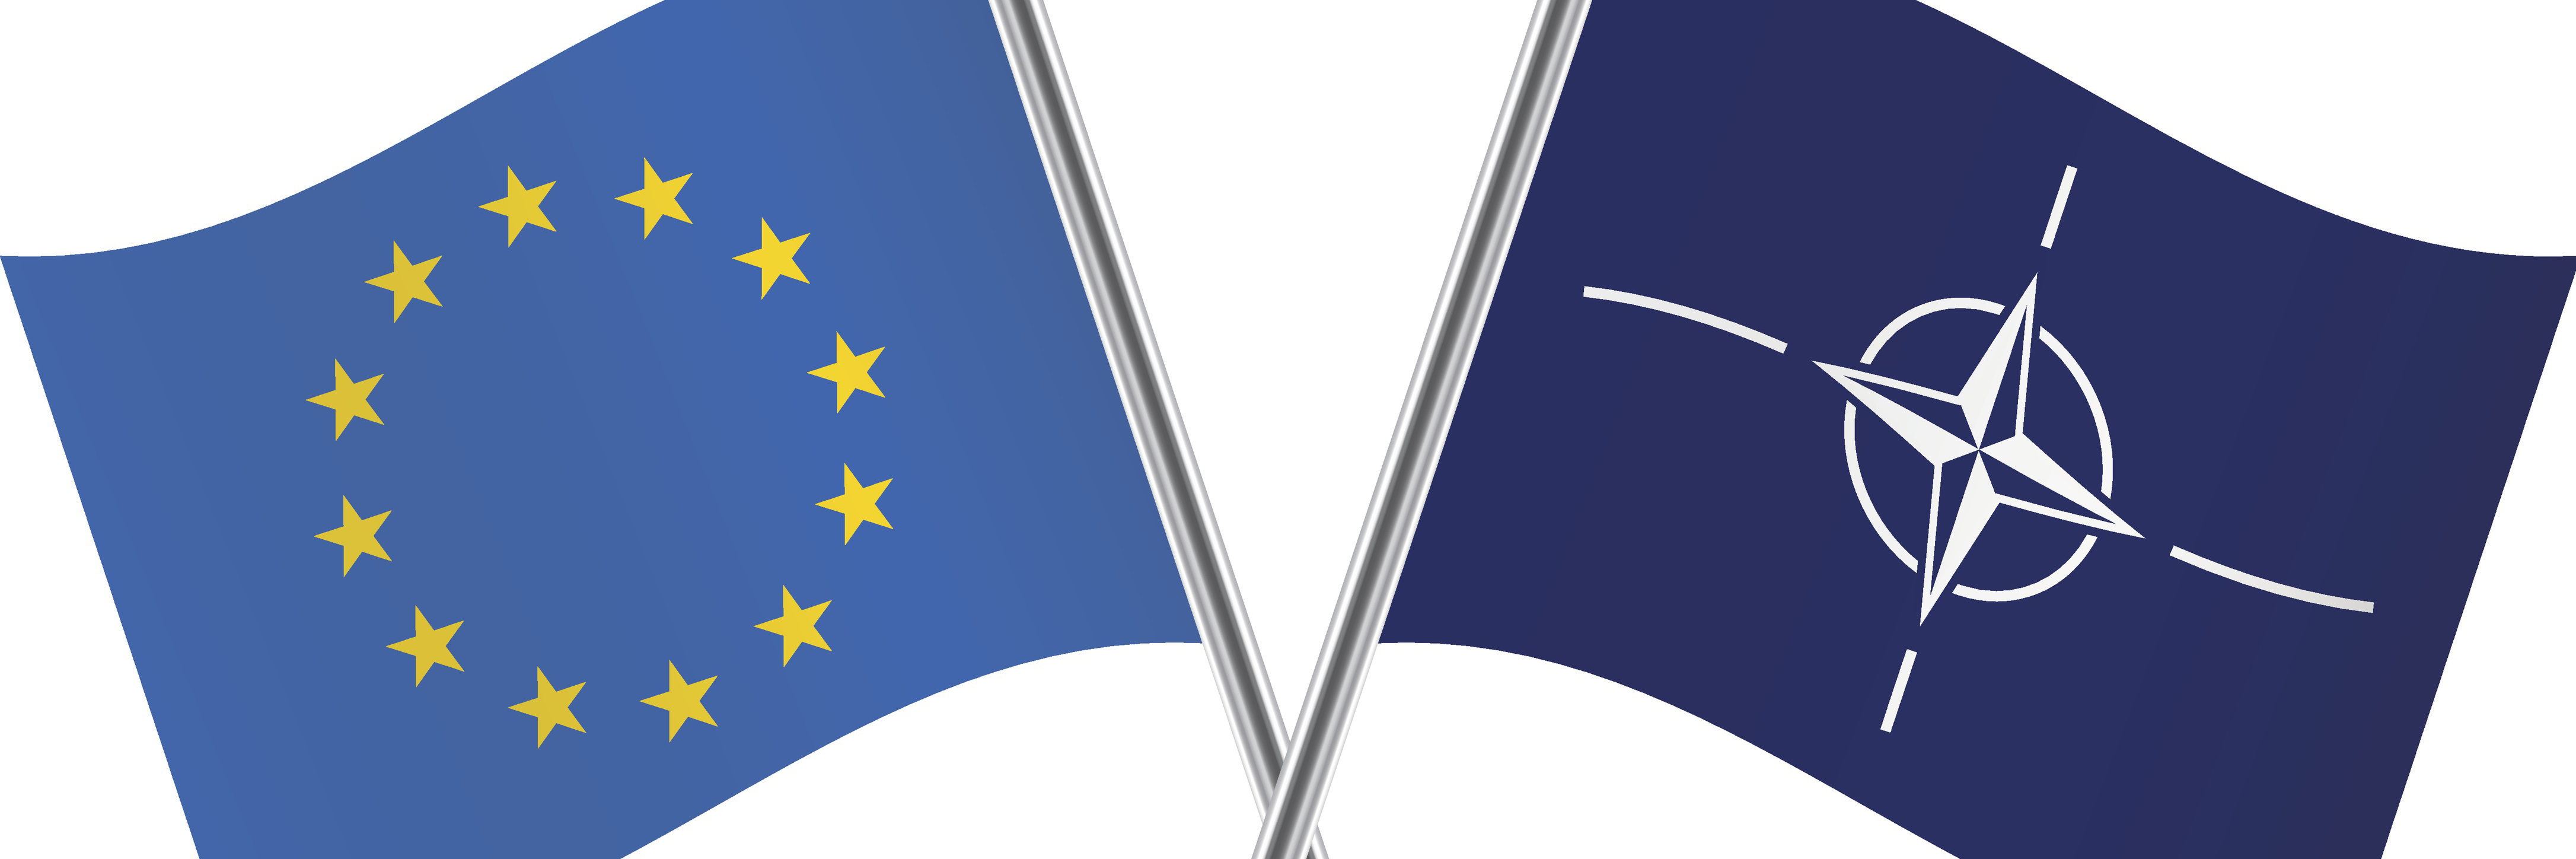 EU-NATO Joint Declaration: Third Progress Report published